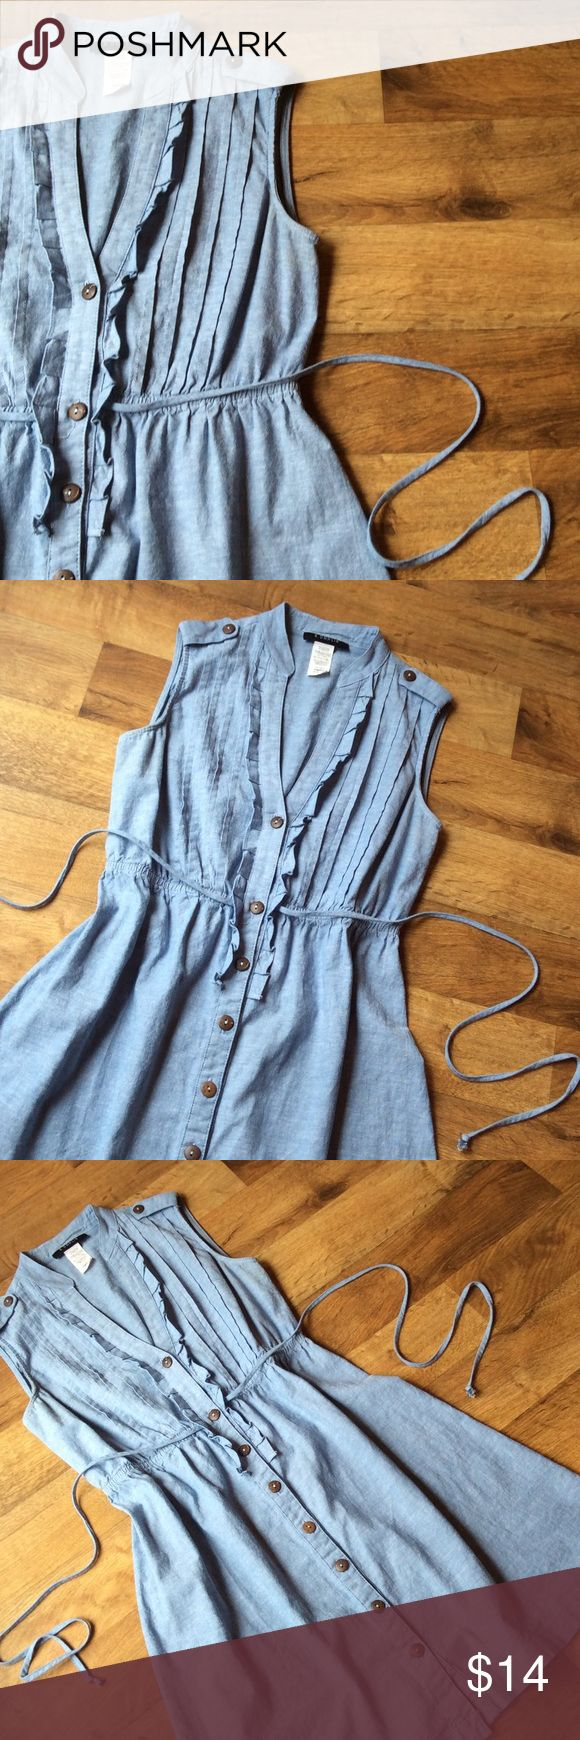 Lightweight. Denim. Vintage. Dress Was going to wait till Spring to list this sweet little denim dress...but decided it could be Wintered up with tights and a chunky sweater. So, here it is. Truly vintage. Very nice condition. Cotton. Size 5/6 Vintage Dresses Mini